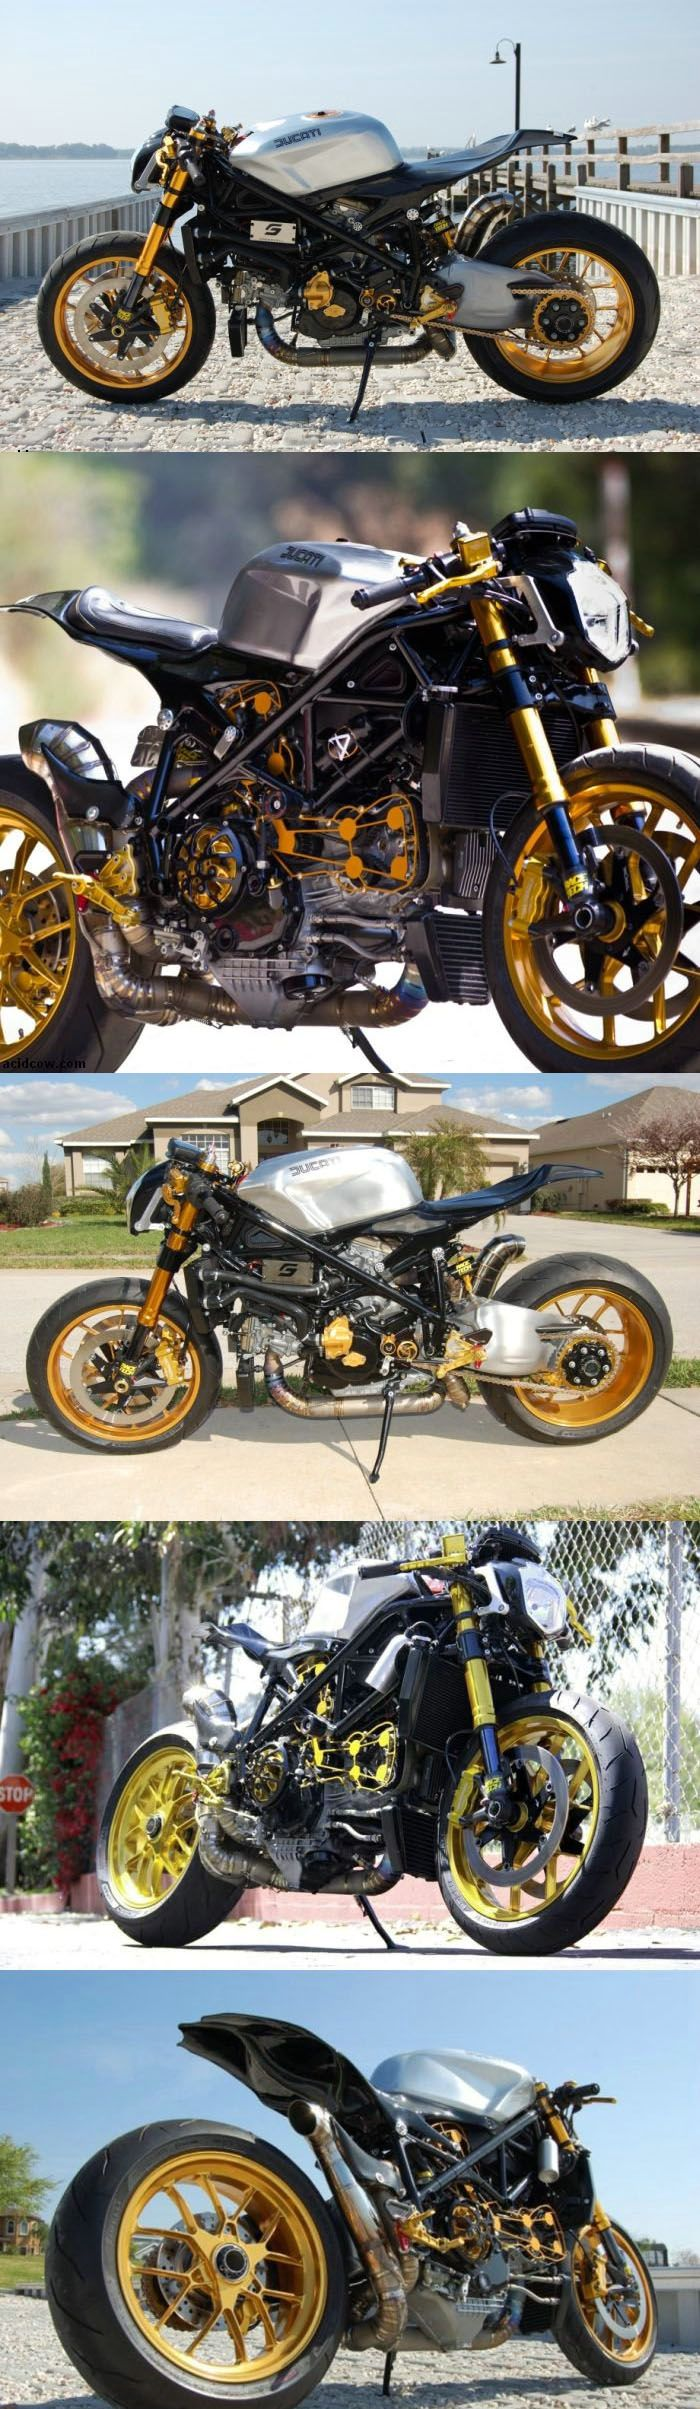 STRANGE RACERS - CUSTOM STREETFIGHTER DUCATI 1098 CAFE RACER